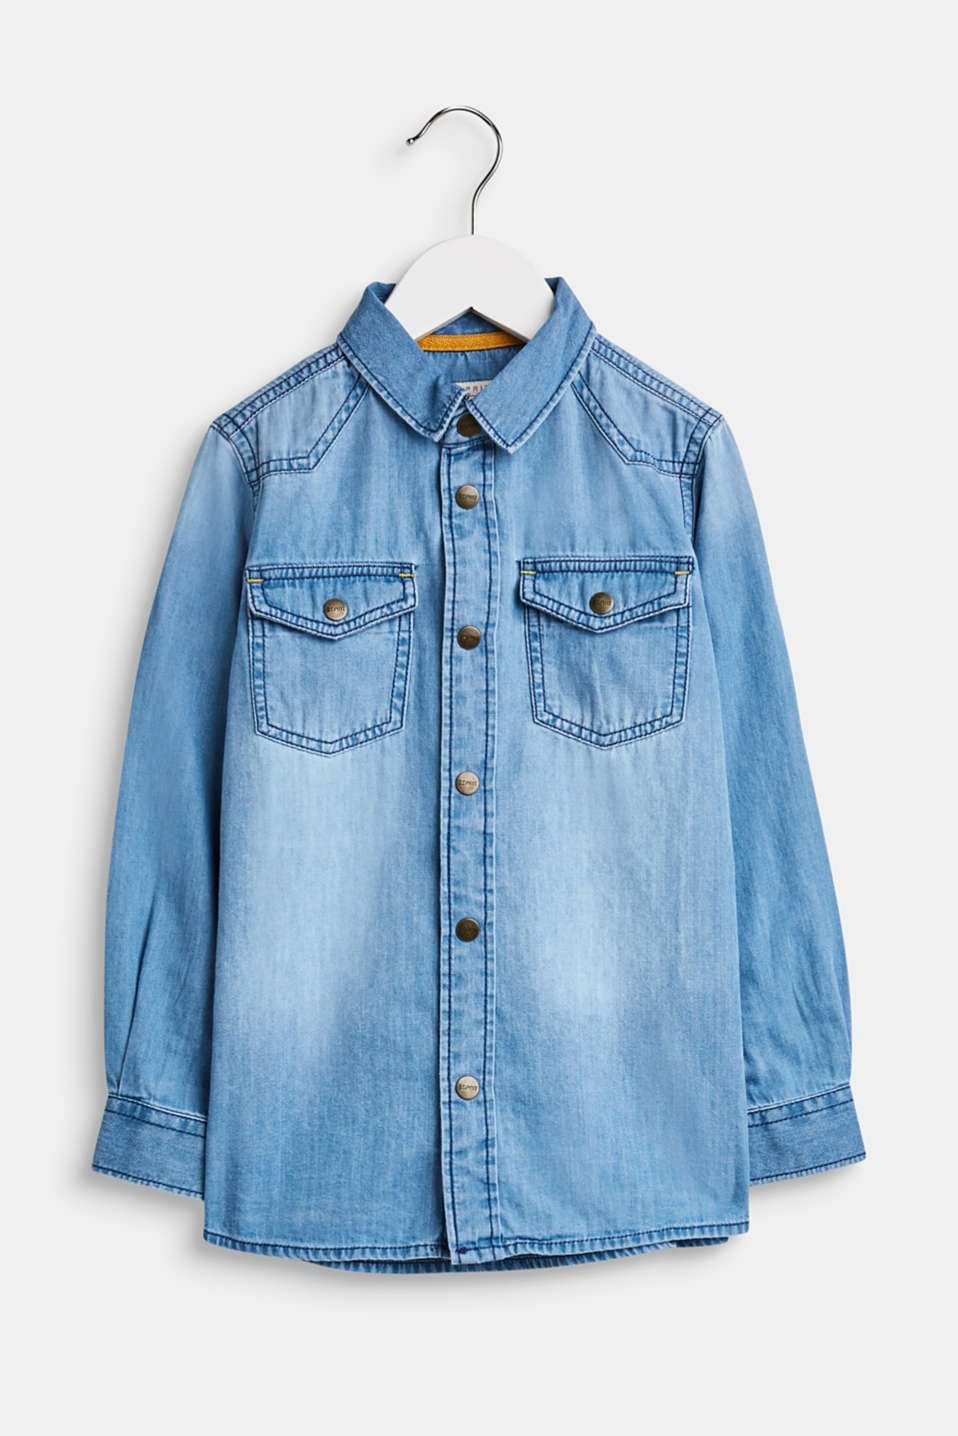 Esprit - Garment washed denim shirt, 100% cotton